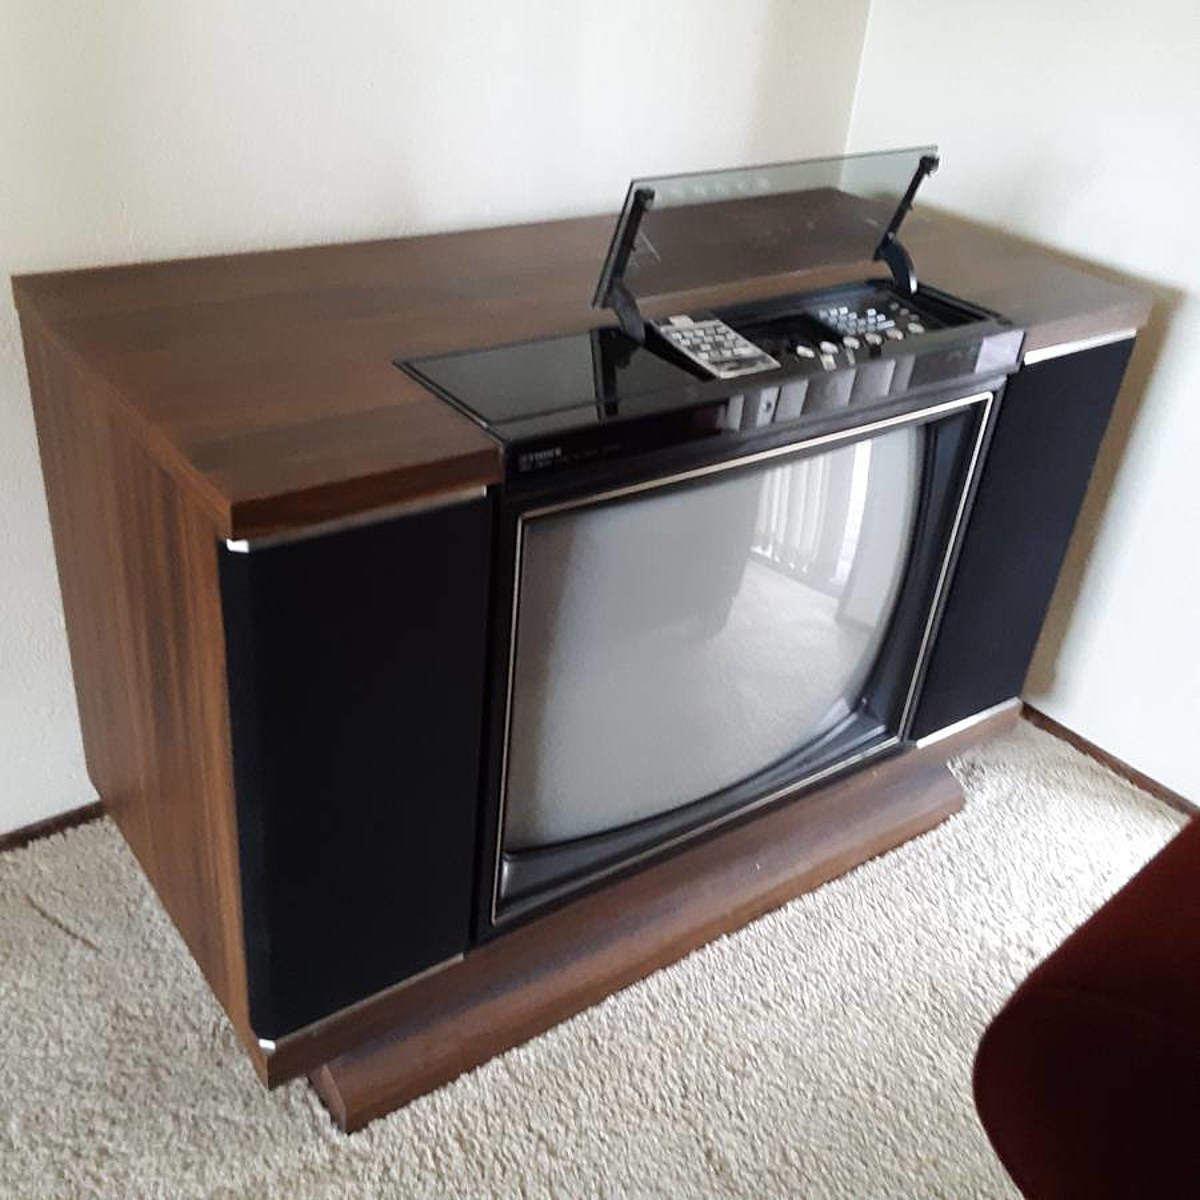 5 Awesome Free Items On The Tri-Cities Craigslist [PHOTOS]